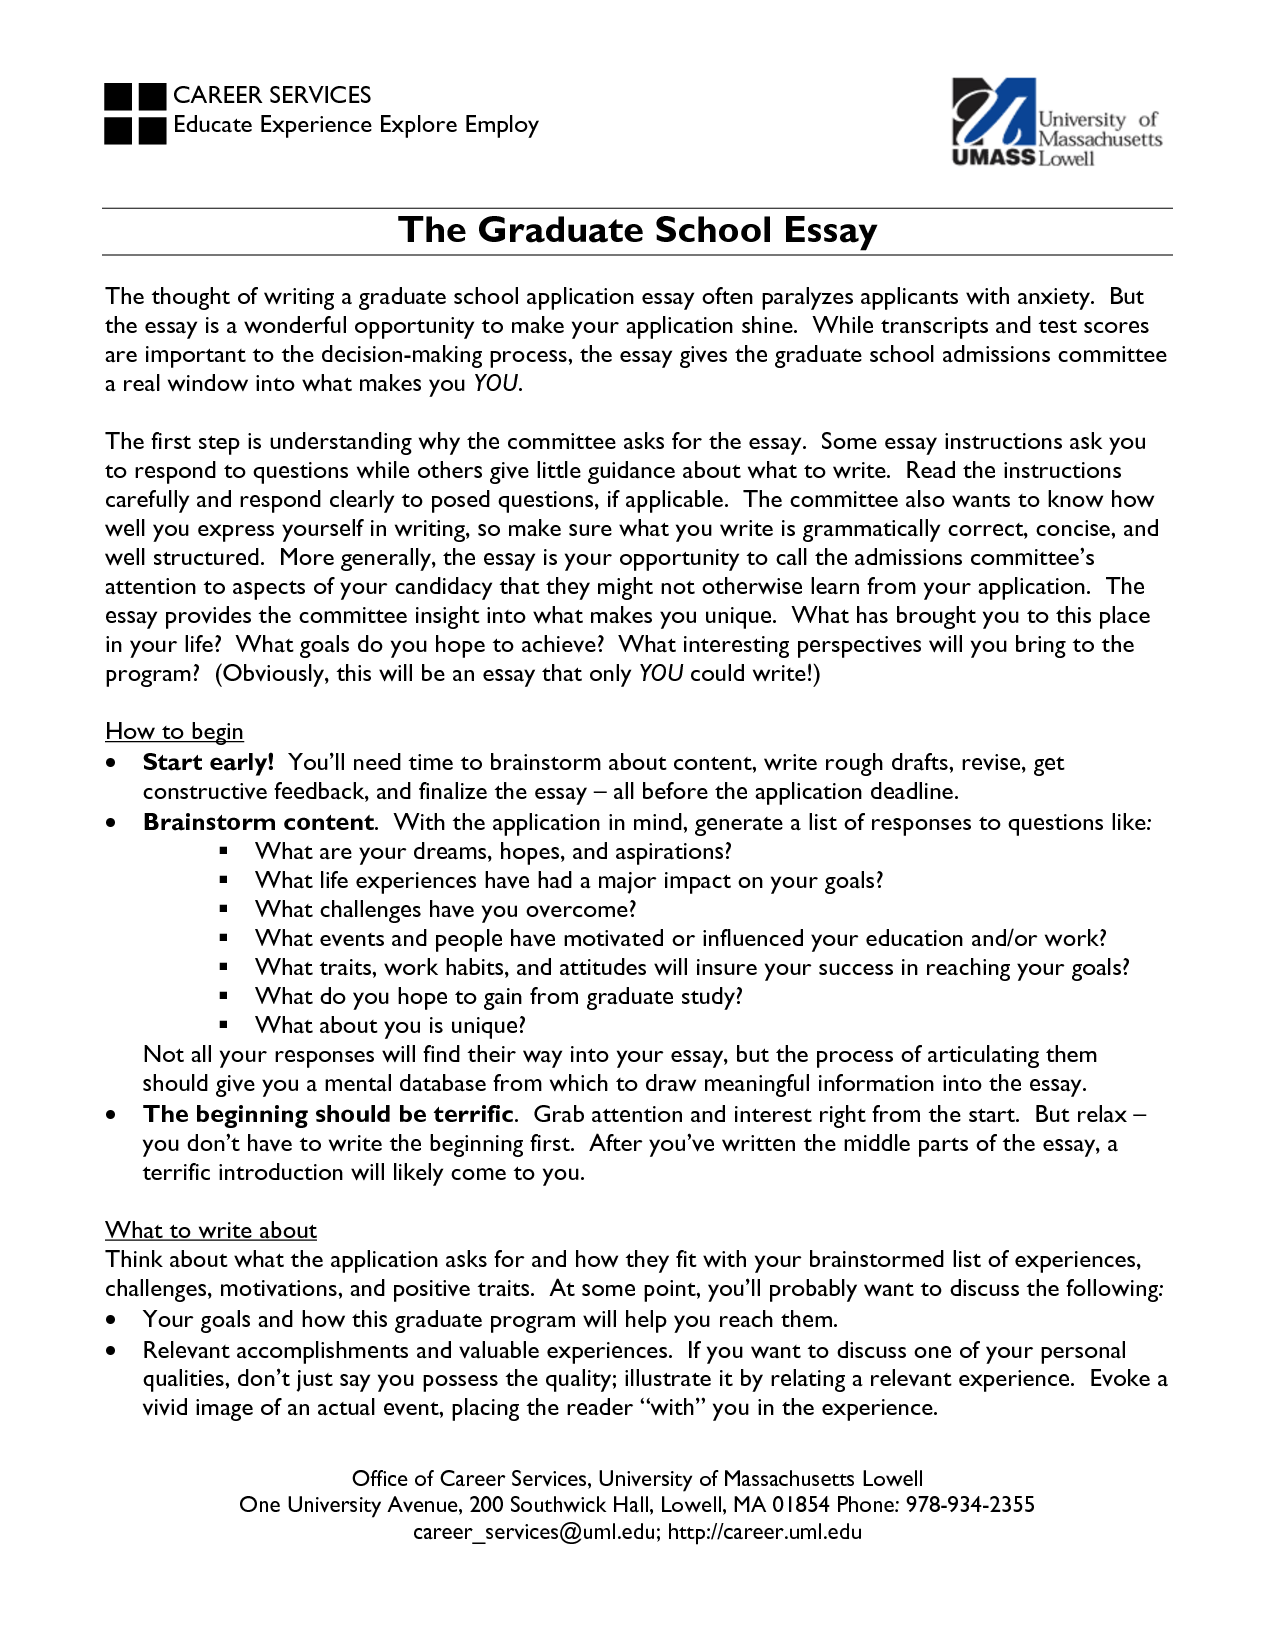 grad school essay format technology officer sample resume free 36nyax20x5 grad school essay formathtml - Graduate School Essays Examples